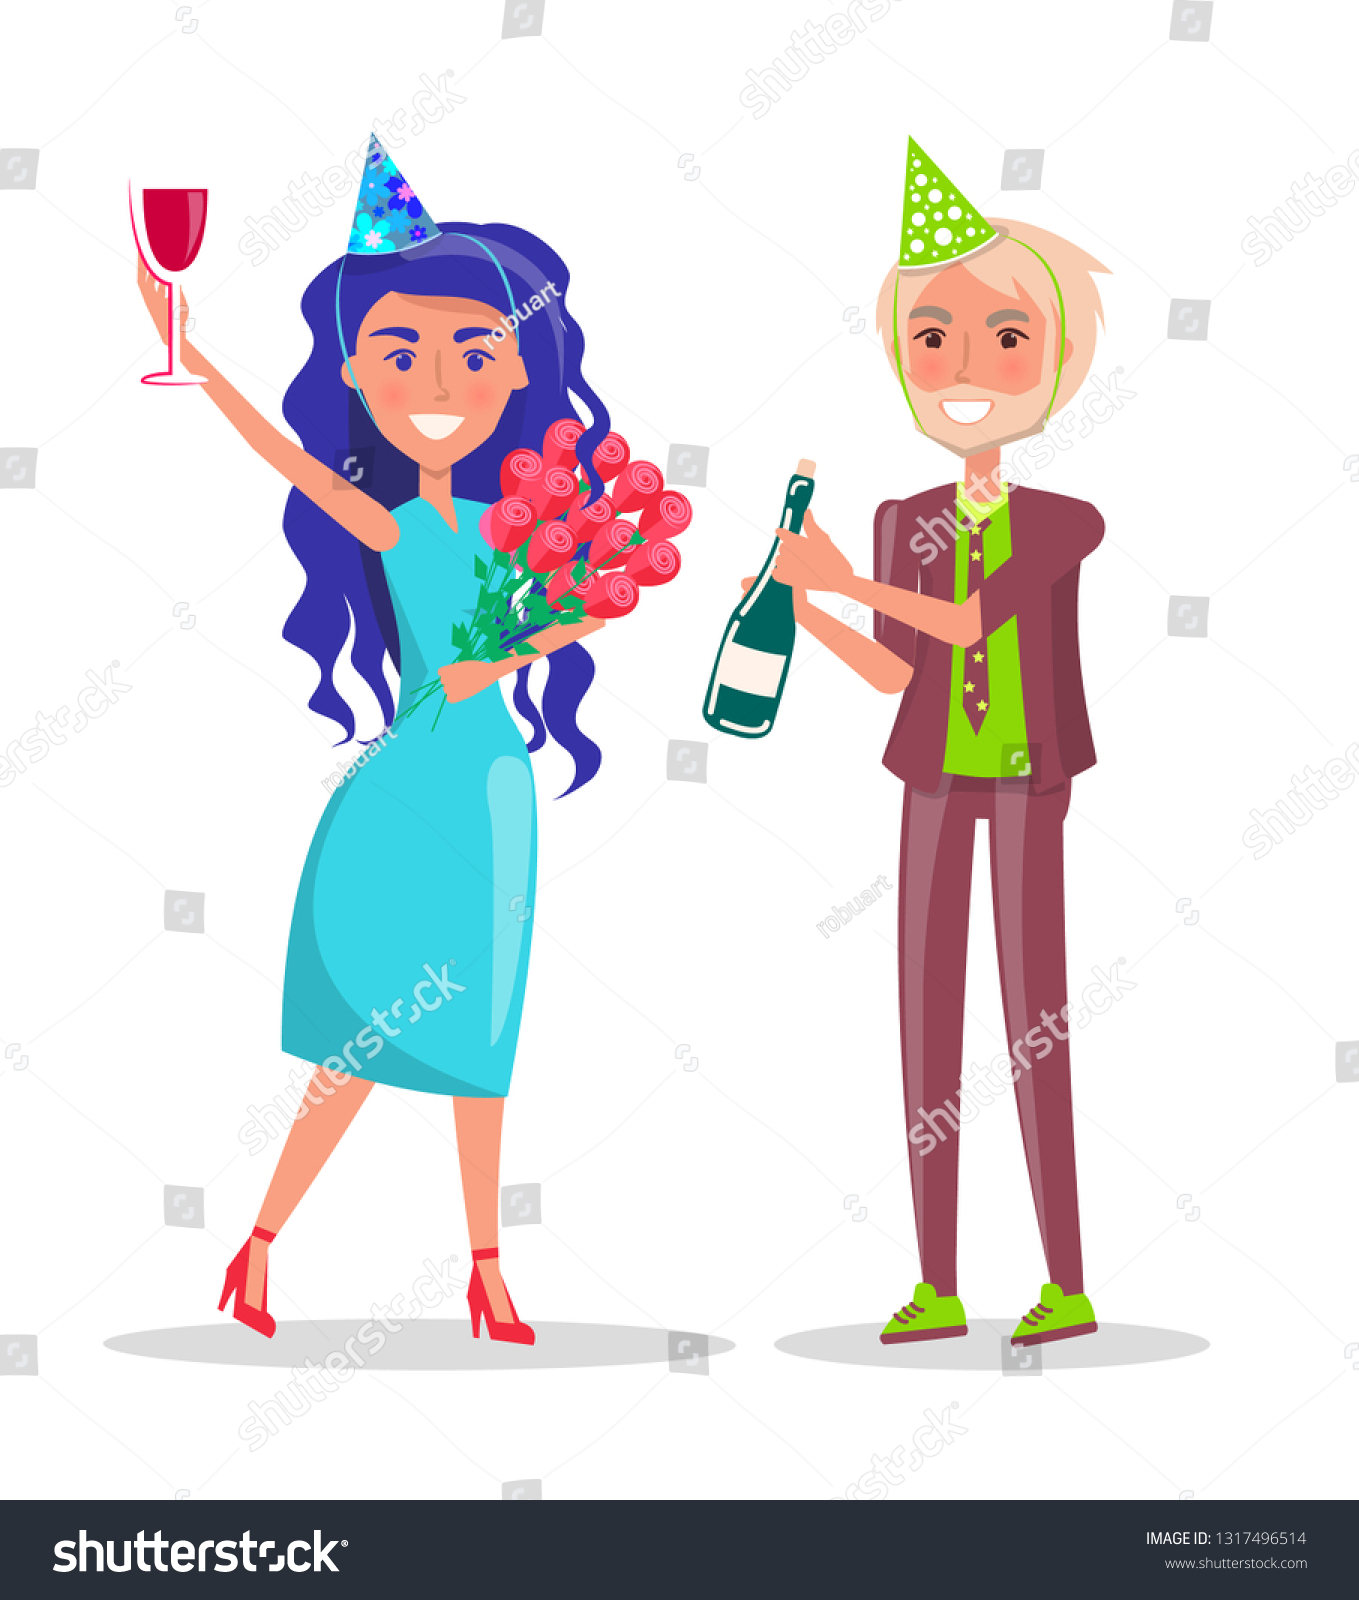 Woman Festive Hat Bouquet Flowers Cocktail Stock Vector Royalty Free 1317496514